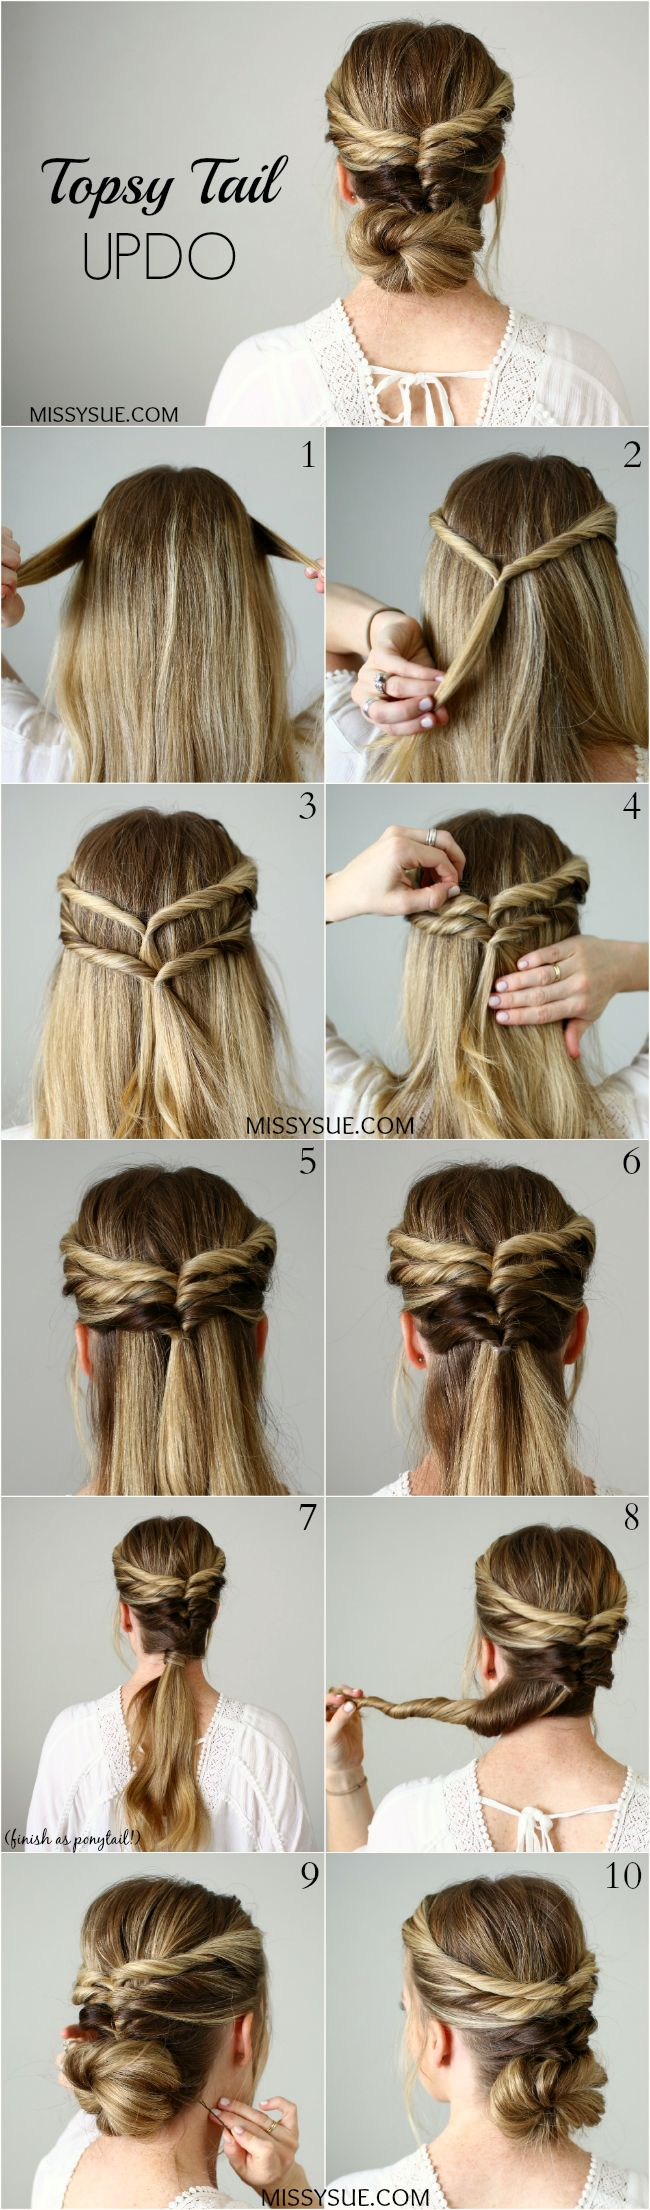 792 best hair tutorials images on pinterest | hairstyles, beauty